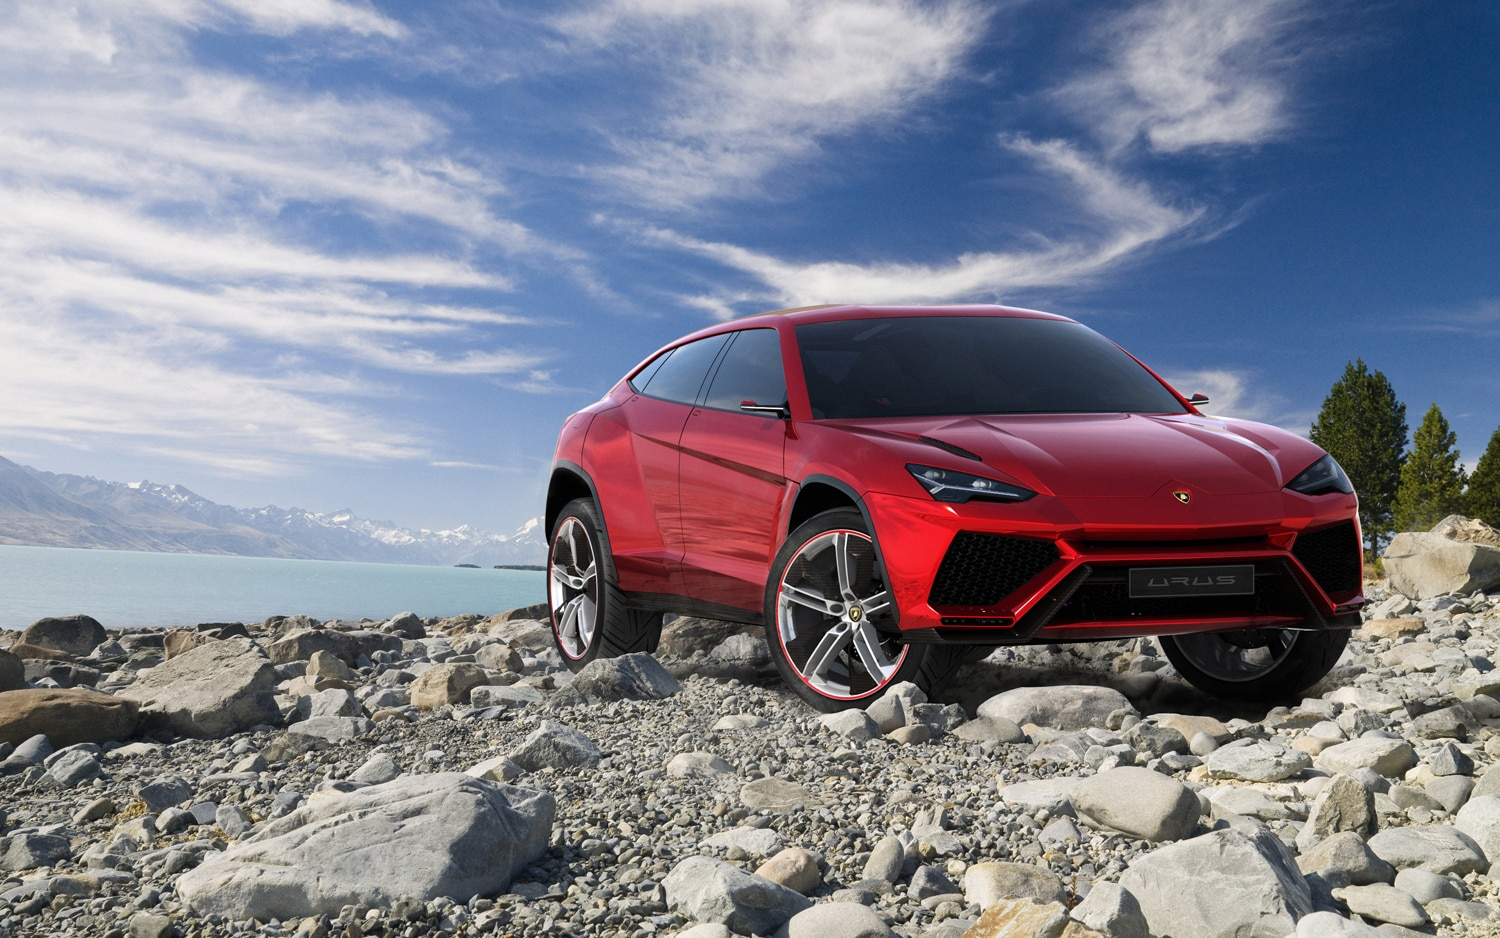 Lamborghini Urus Front Right Side View1